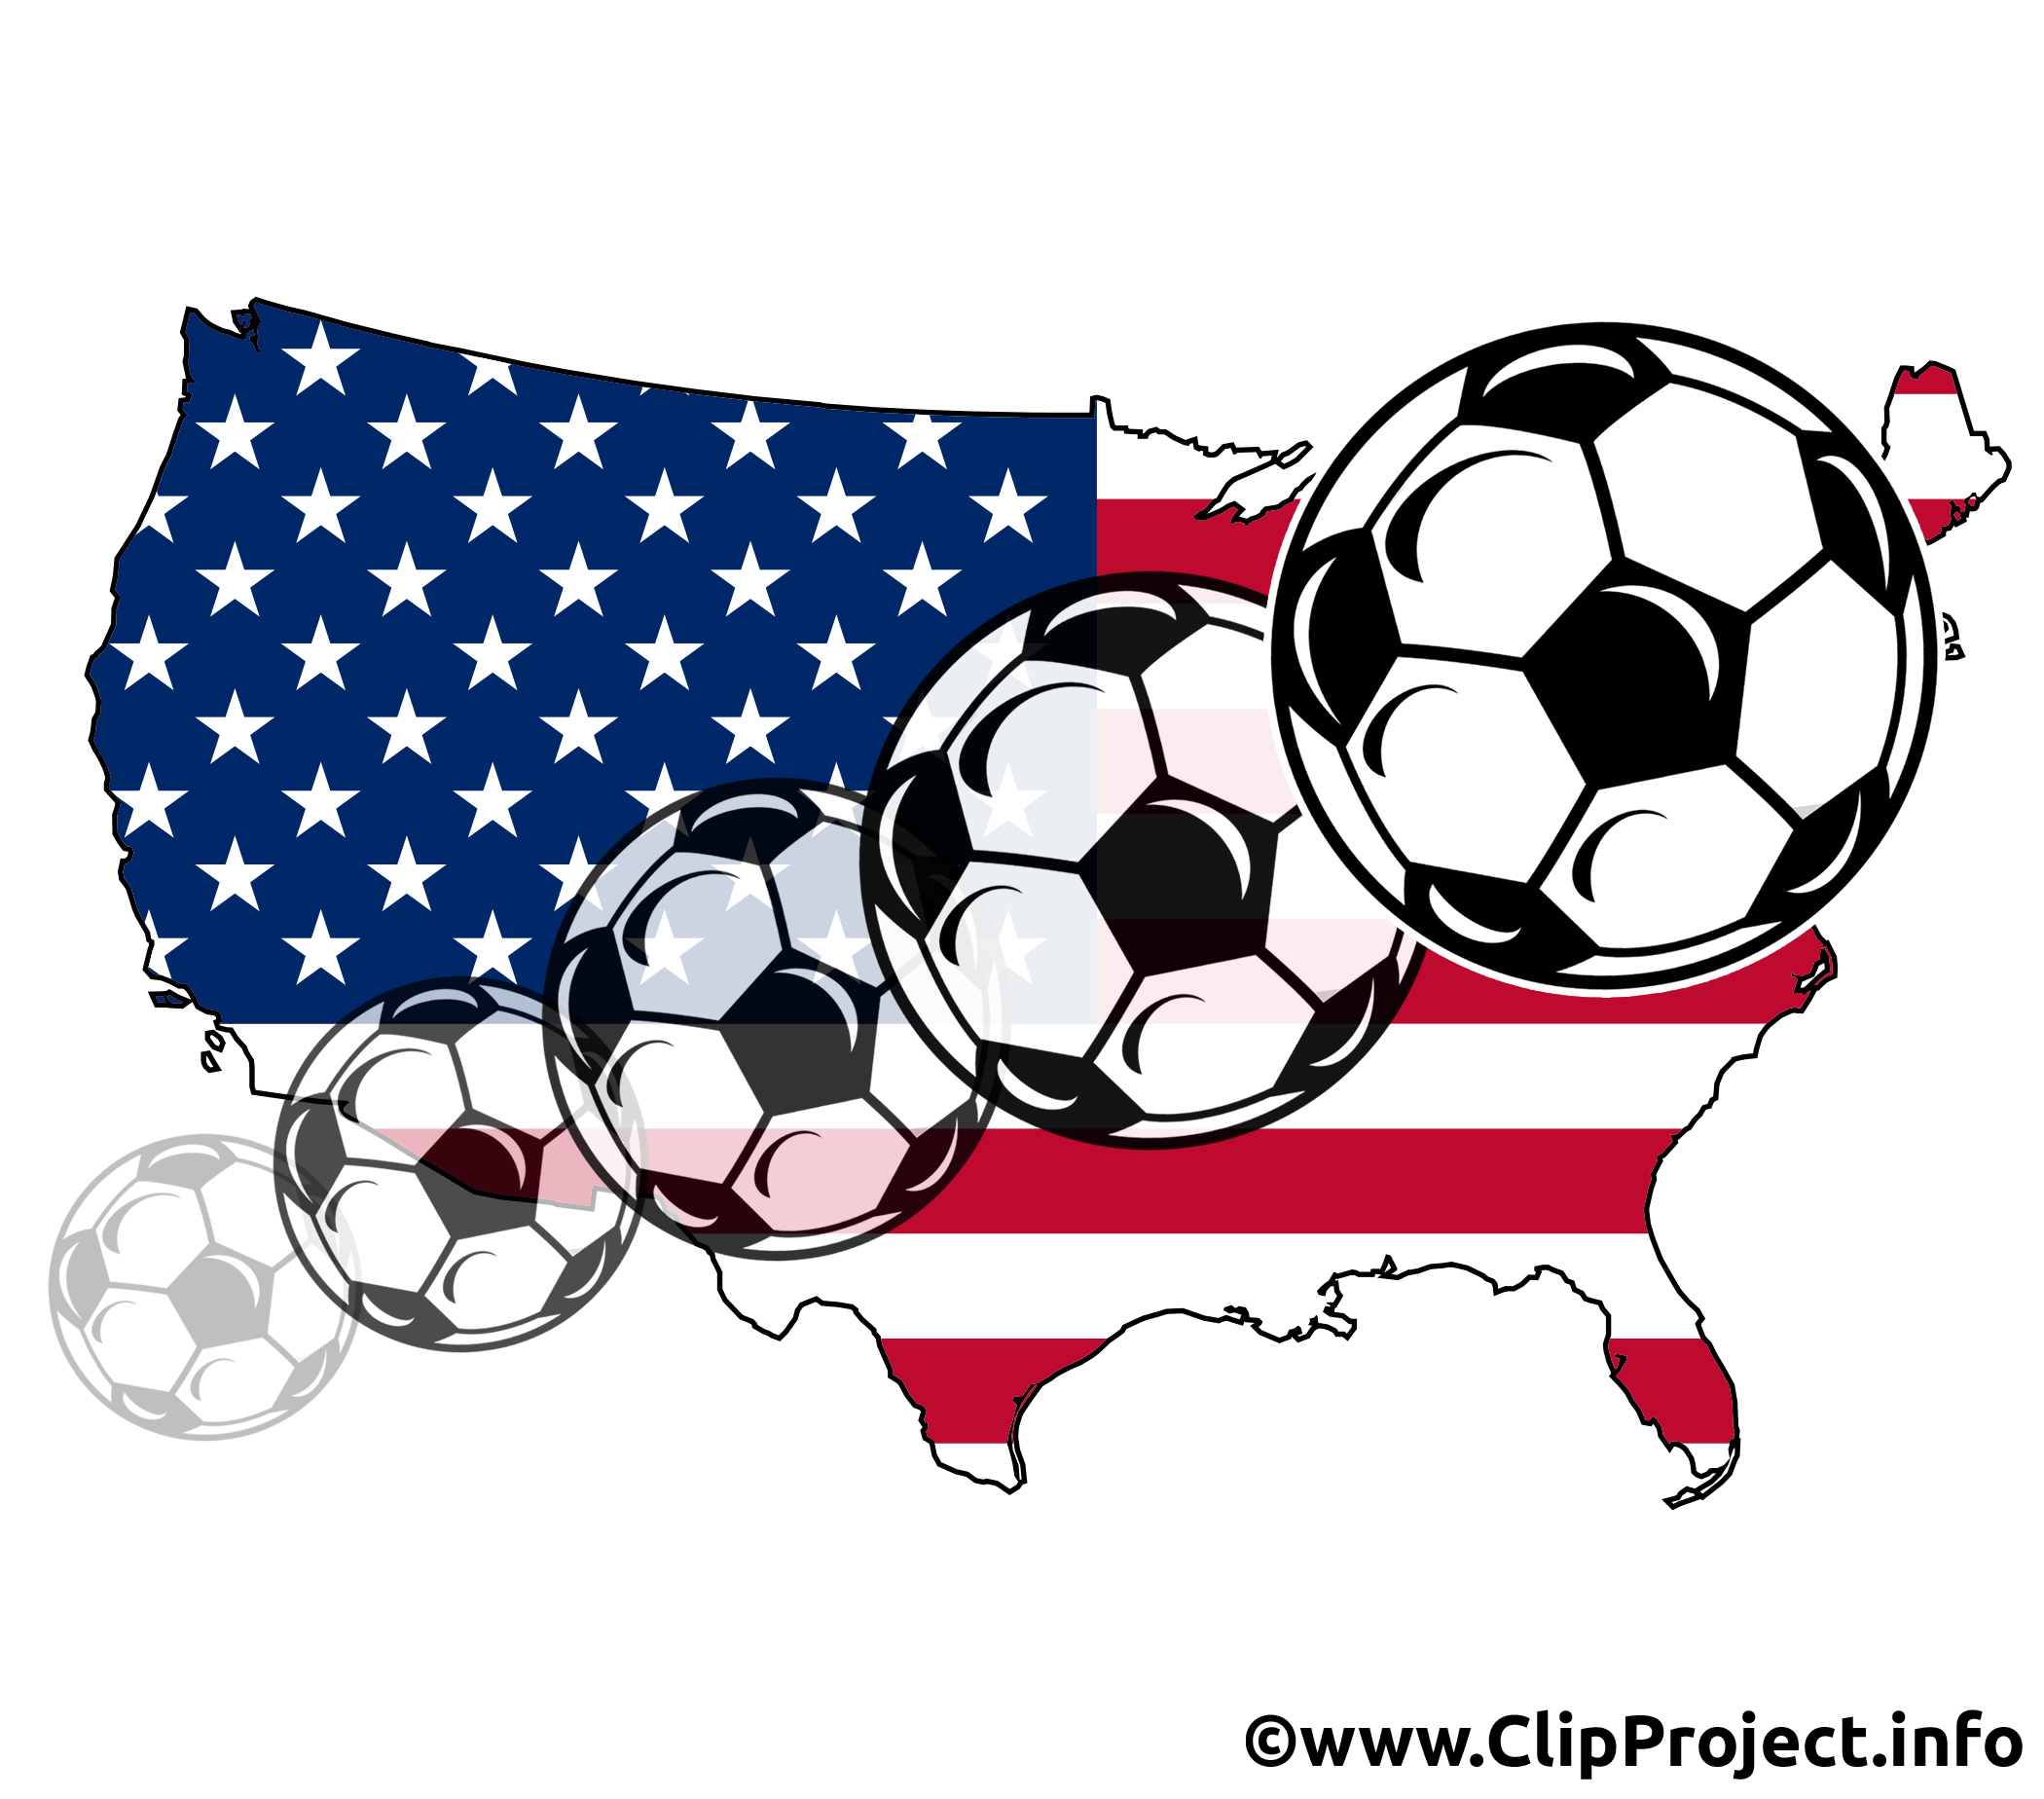 2100x1848 Usa Map With Flying Soccer Balls Image